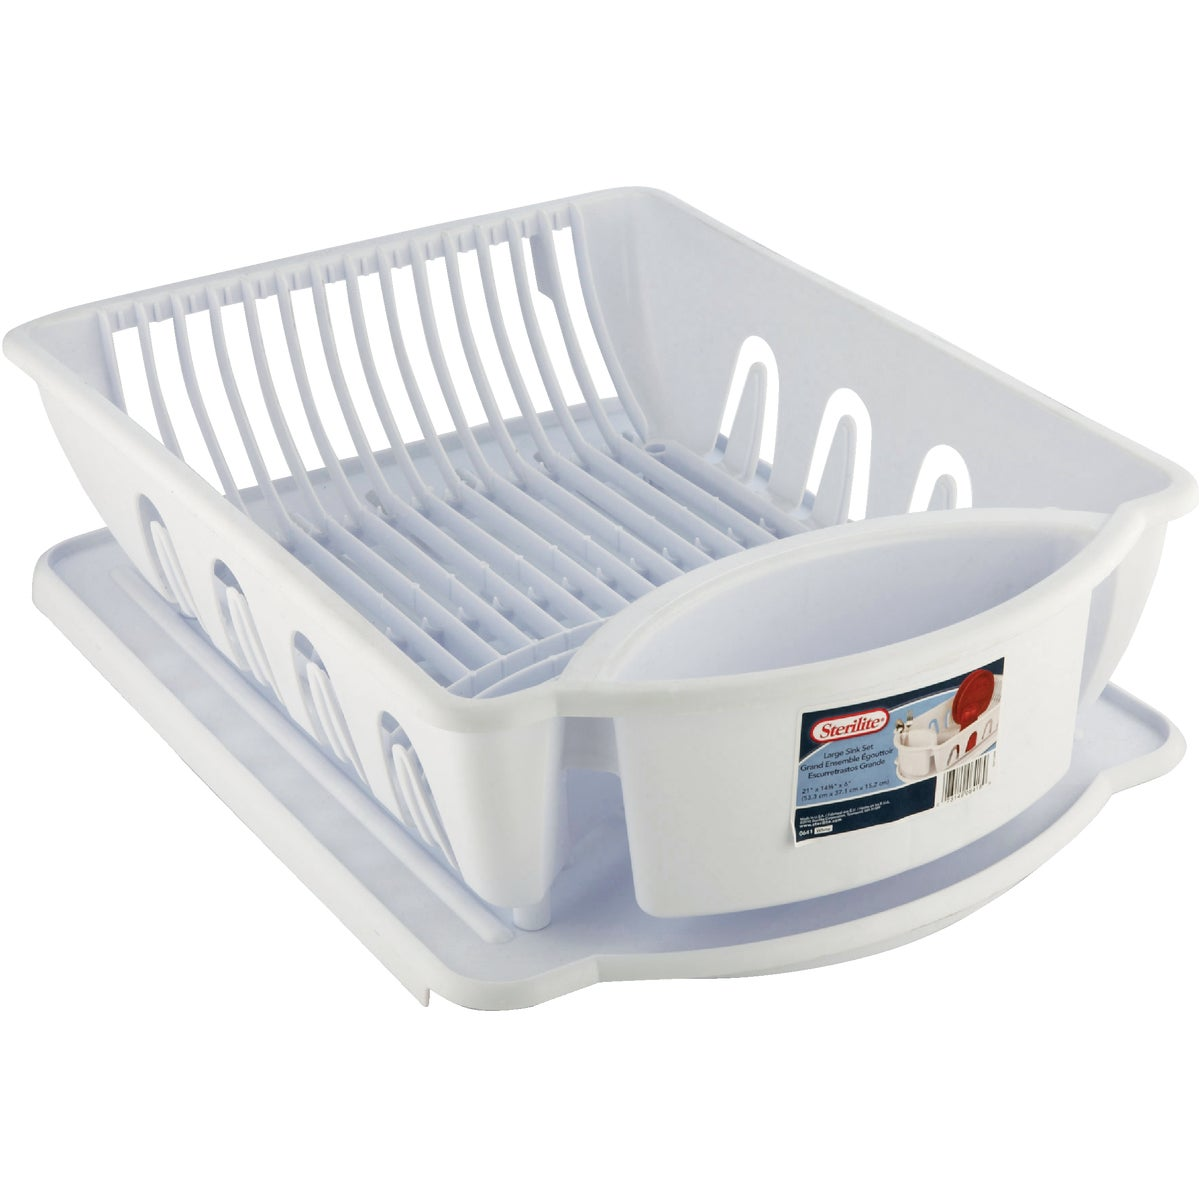 2PC WHITE DISH DRAINER